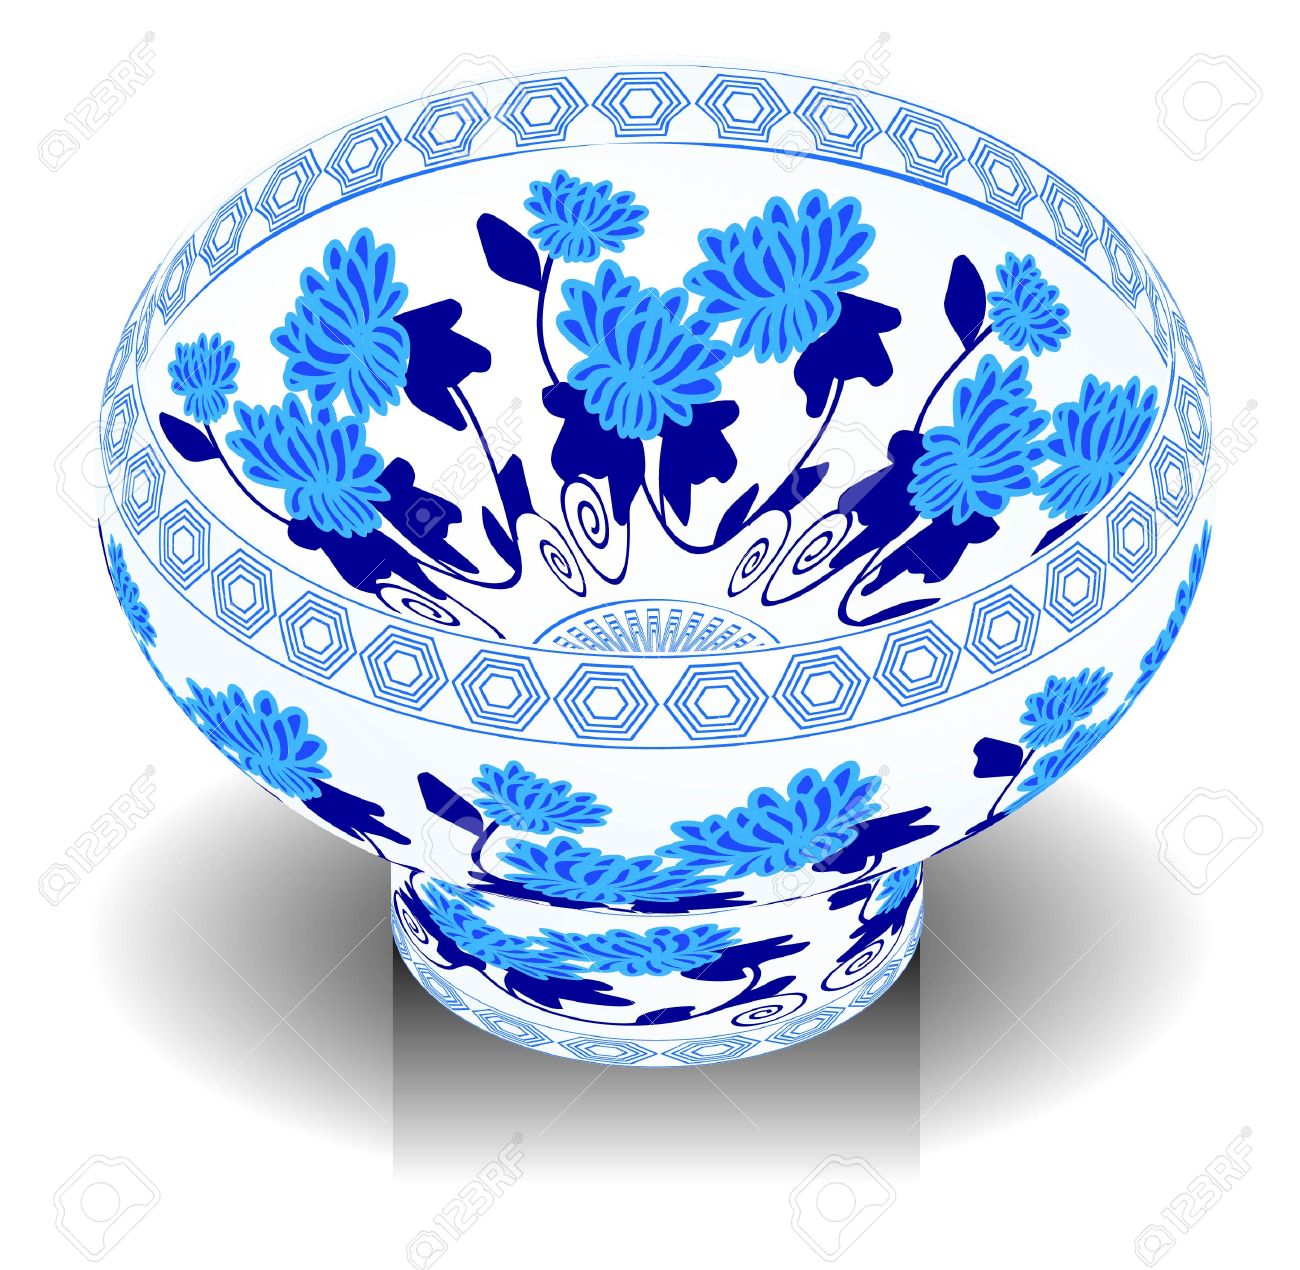 A Vector, Illustration For A China Porcelain, Pottery, Bowl.